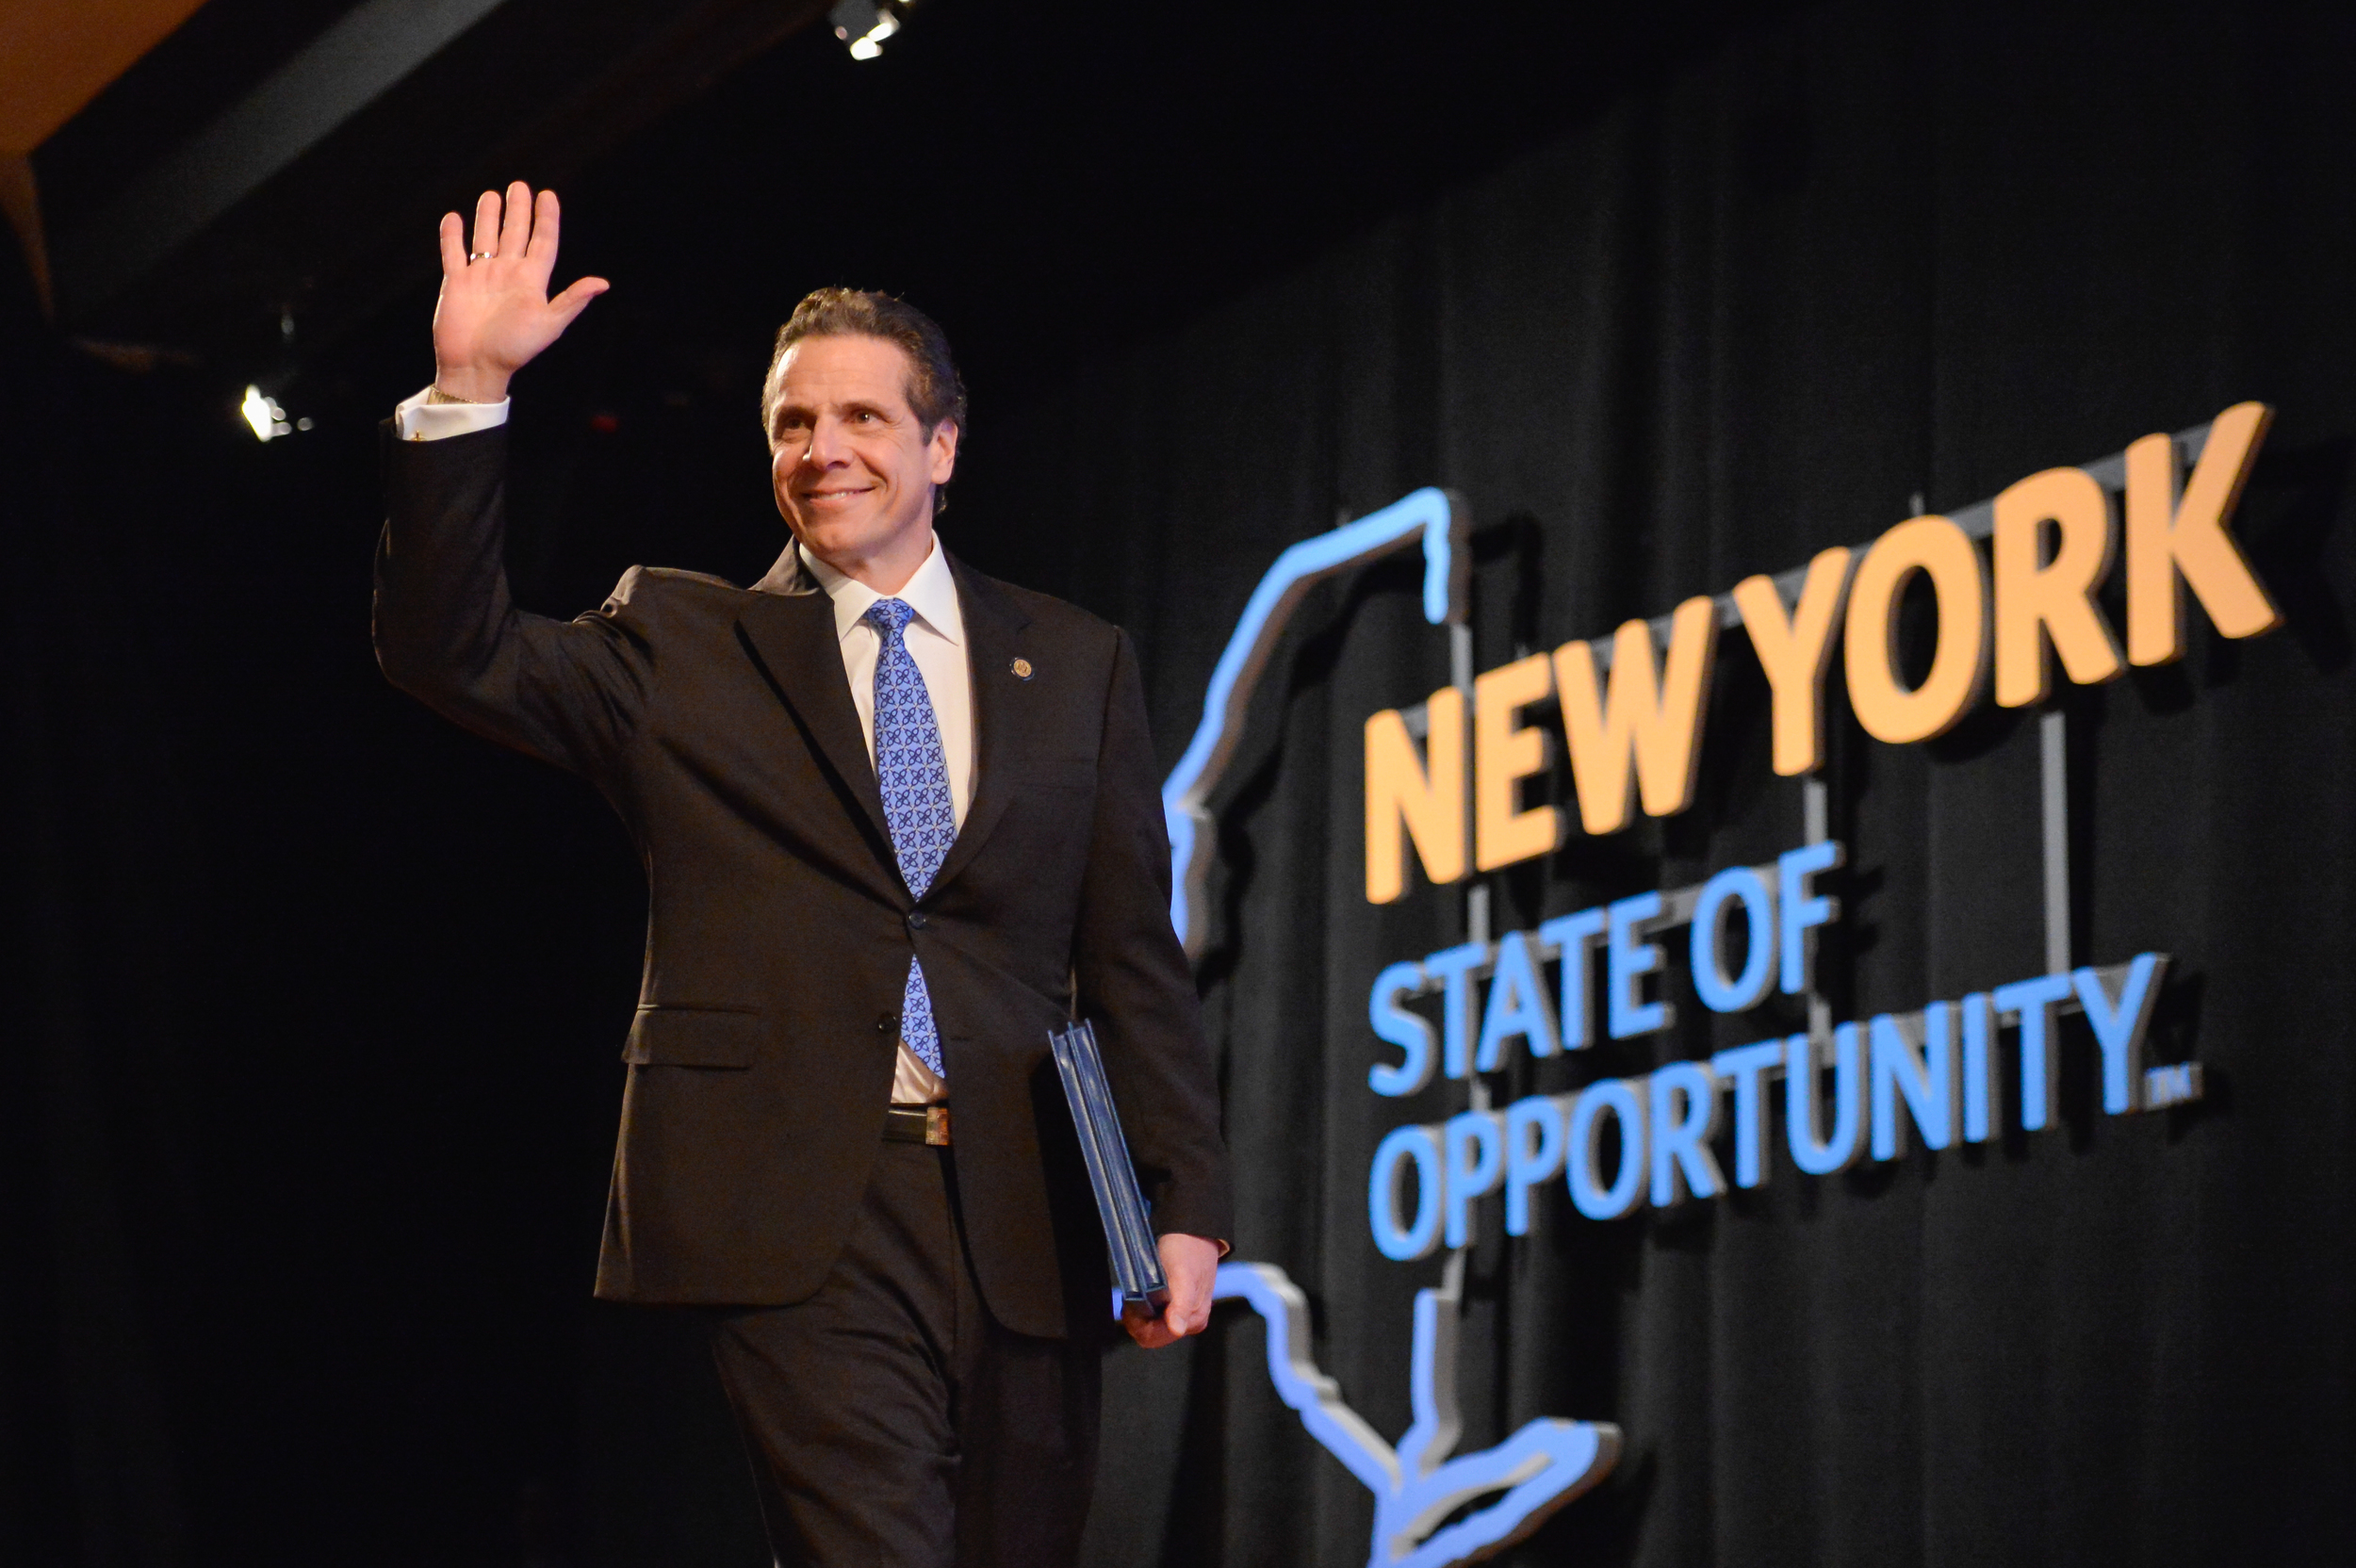 "Governor Andrew Cuomo, presenting his 2015 Opportunity Agenda in Albany on January 21, 2015.  Of the culture of corruption up in Albany, U.S. Attorney  Preet Bharara  said, ""When there's precious little disclosure, precious few consequences for violations, you're going to find huge  opportunities for corruption , and at a minimum for  conflicts of interest ,"" according to  a report  by  The Associated Press  of an interview with  Susan Arbetter  for the radio program,  The Capitol Pressroom .  Source :  Official Photograph/New York Governor's Office/Flickr"